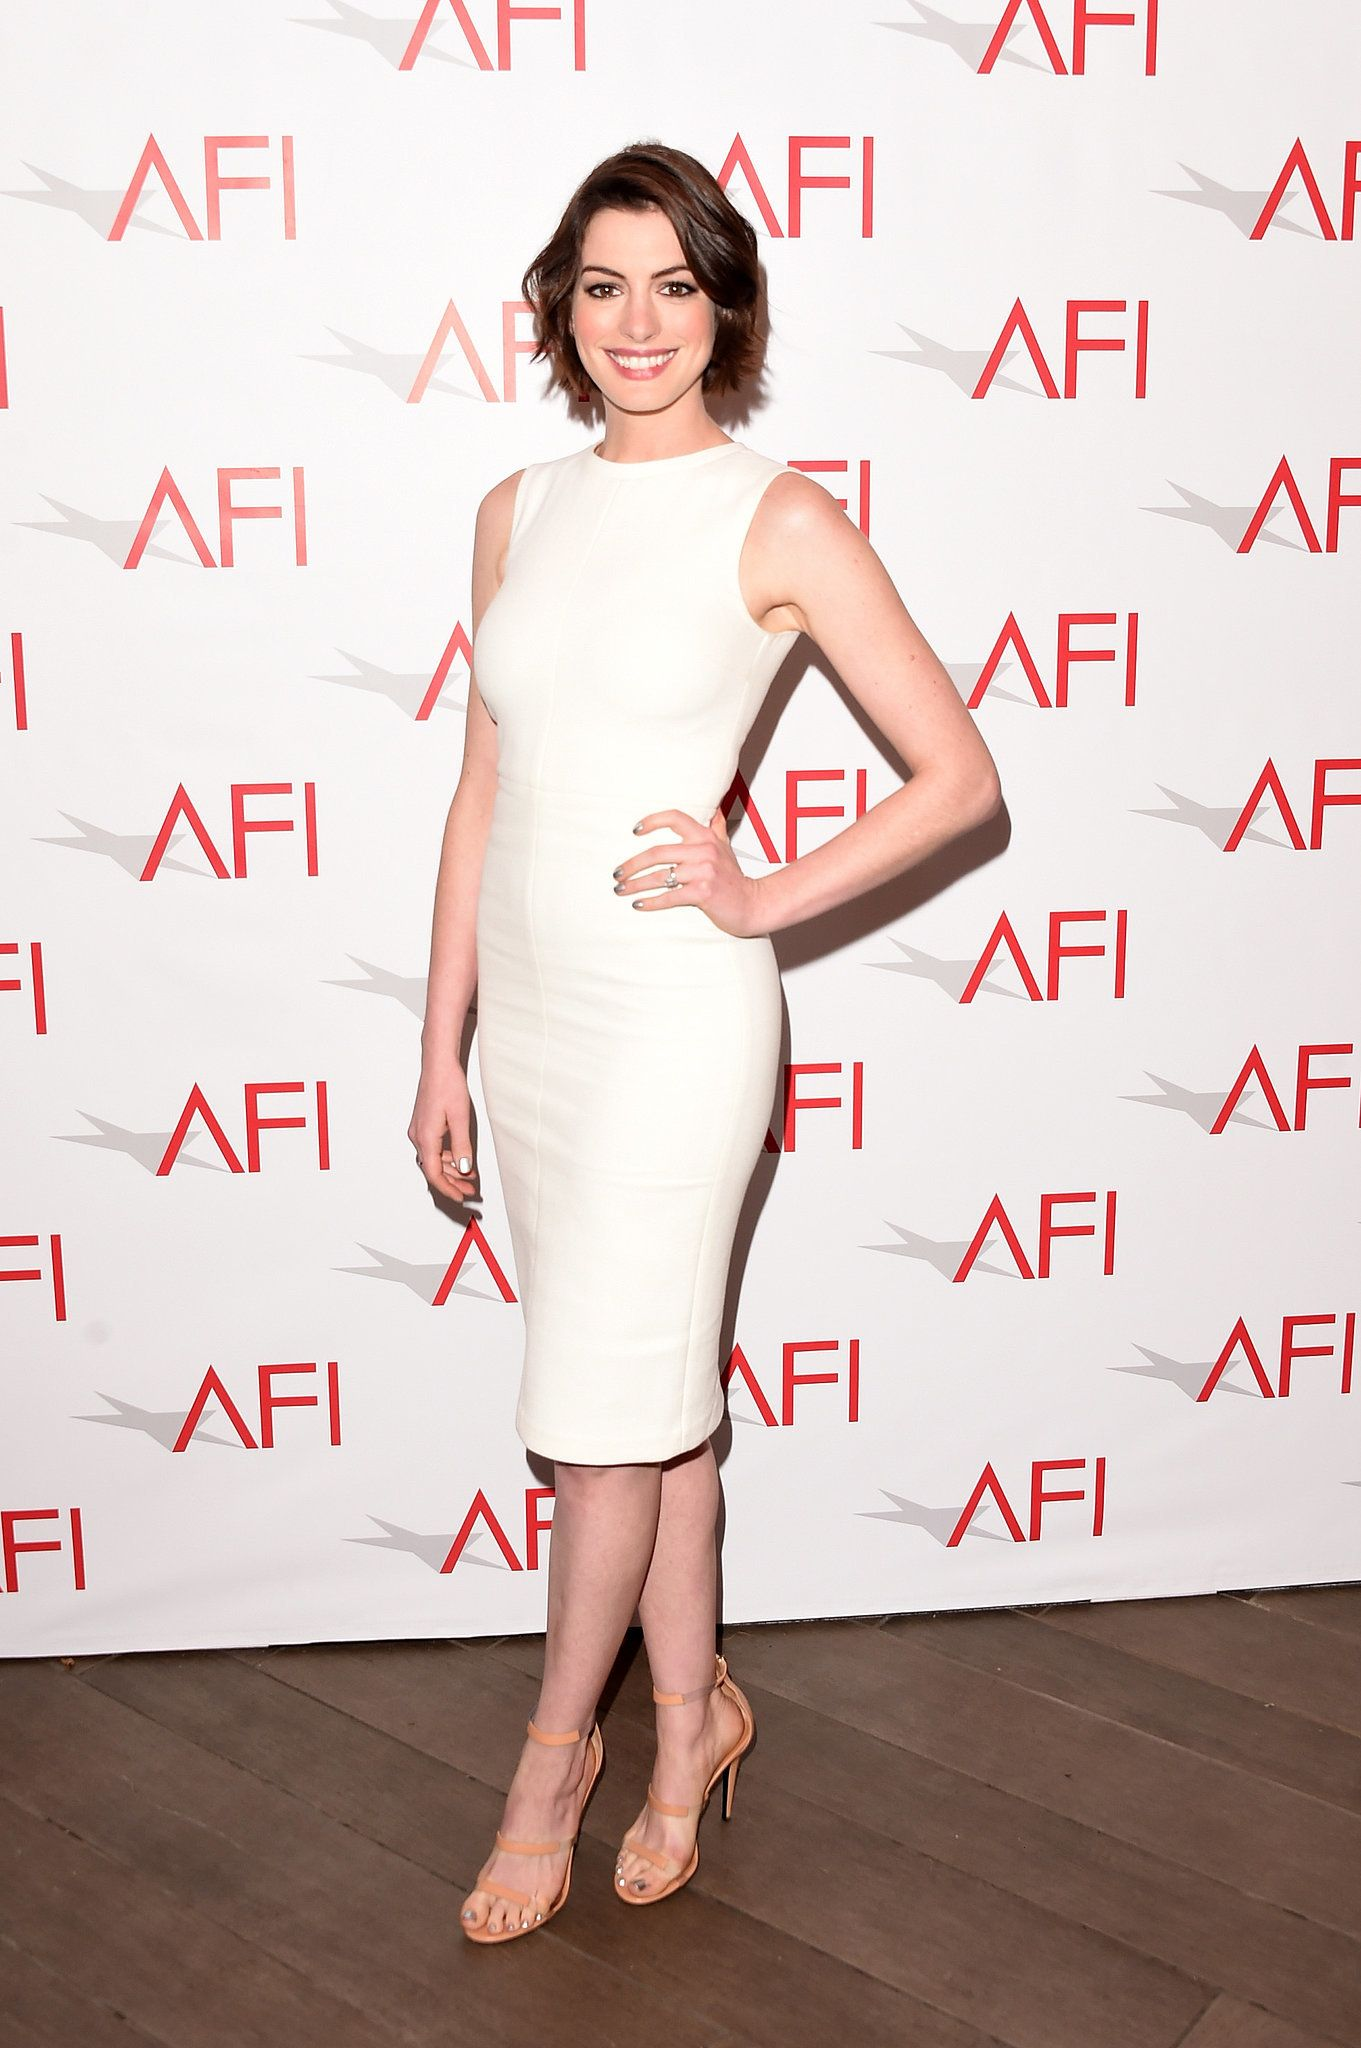 Anne Hathaway in a curve-skimming white dress.